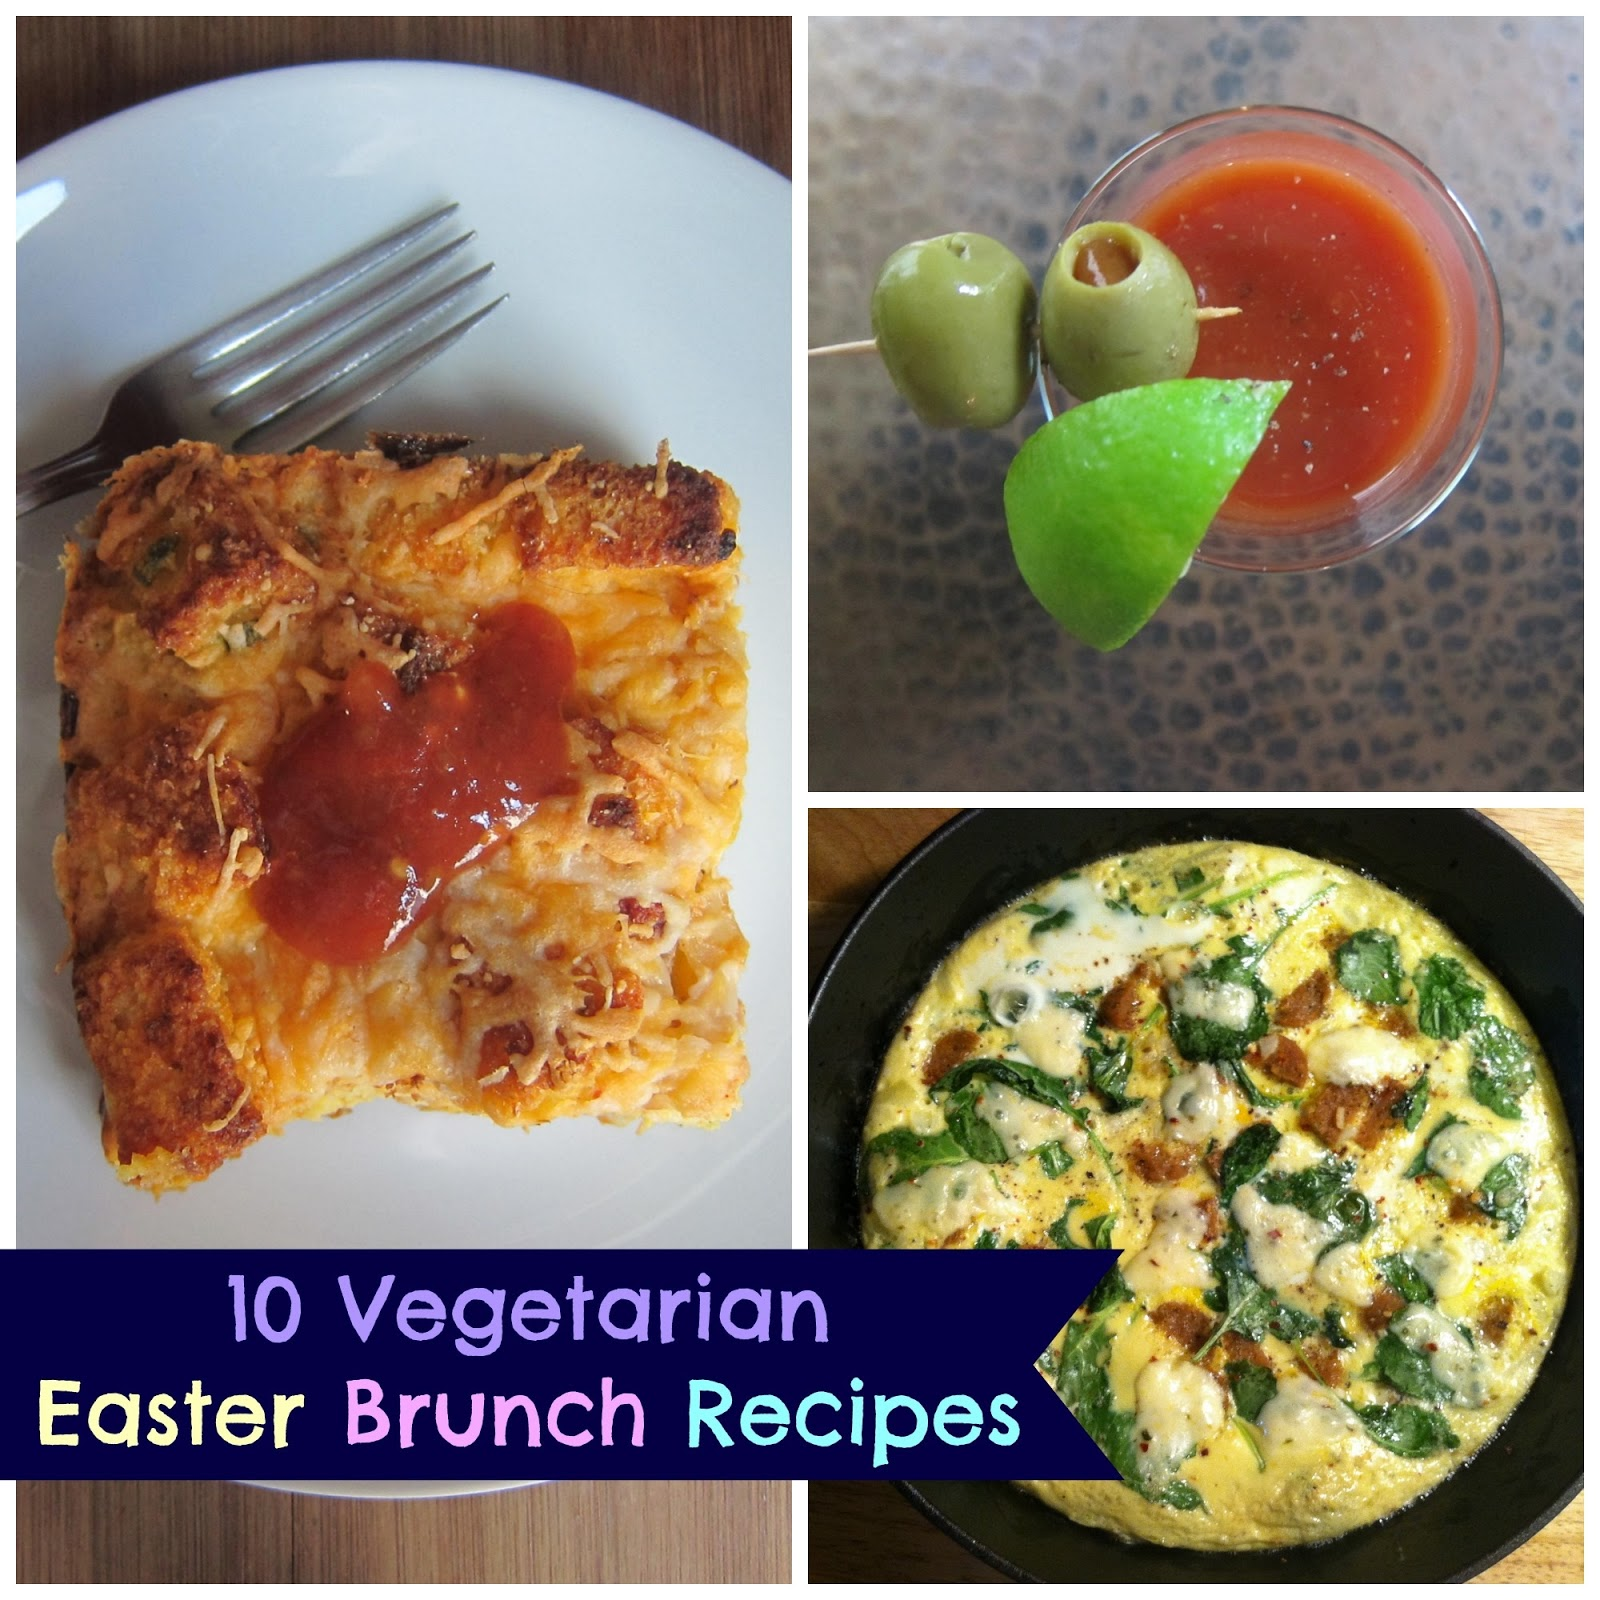 10 Vegetarian Easter Brunch Recipes | The Economical Eater